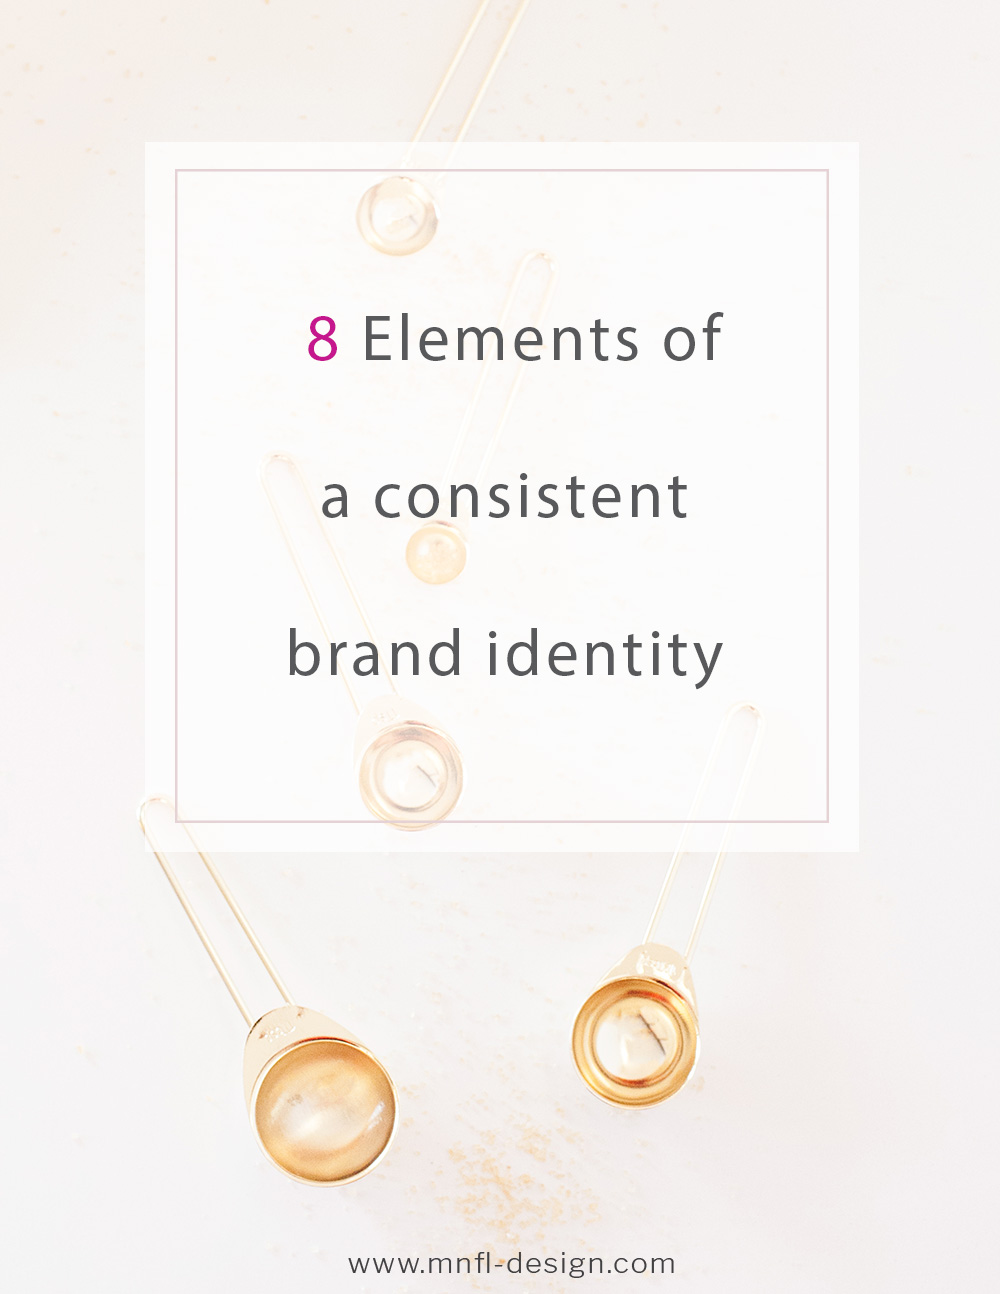 8 Elements of a brand